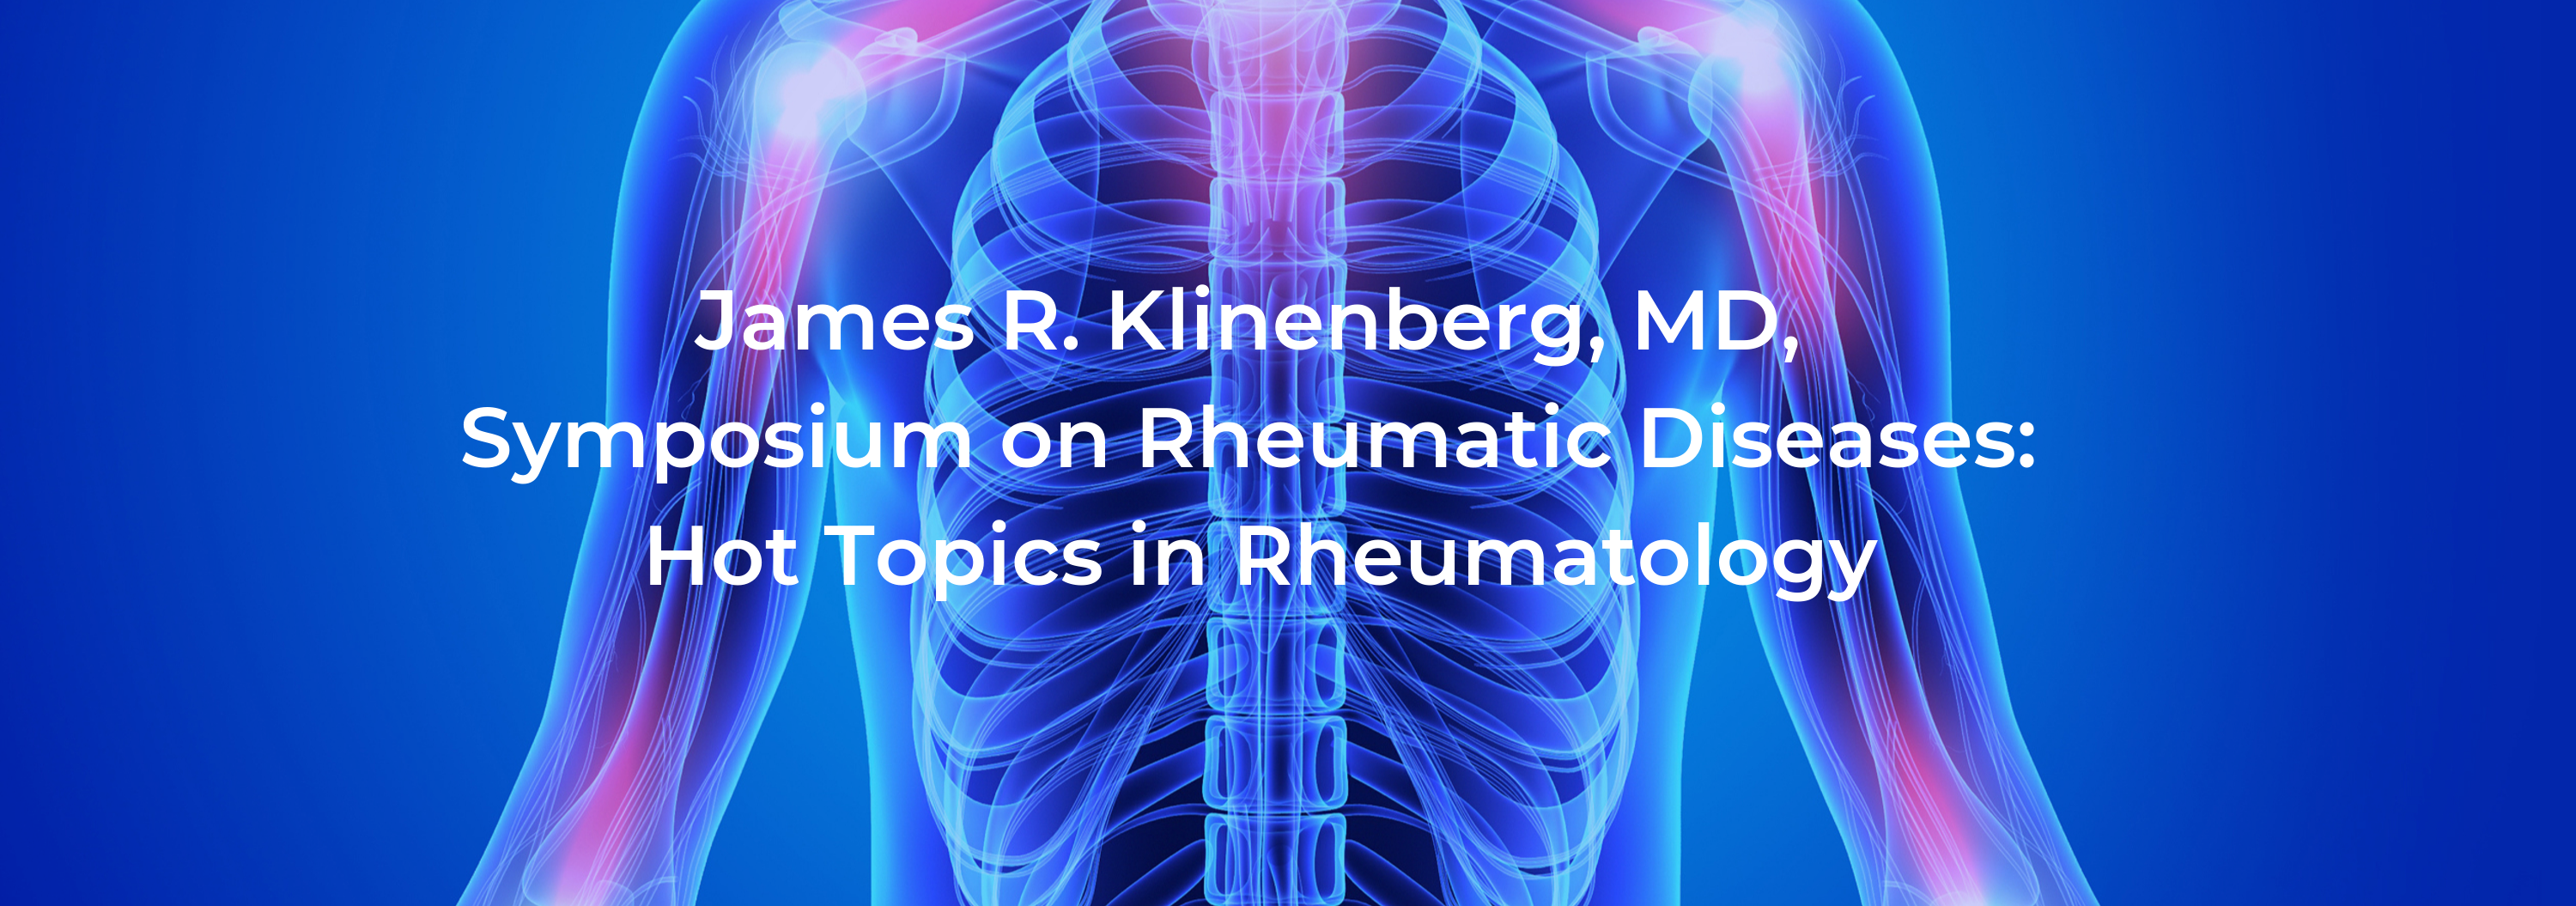 2020 James R. Klinenberg, MD, Symposium on Rheumatic Diseases: Hot Topics in Rheumatology Banner